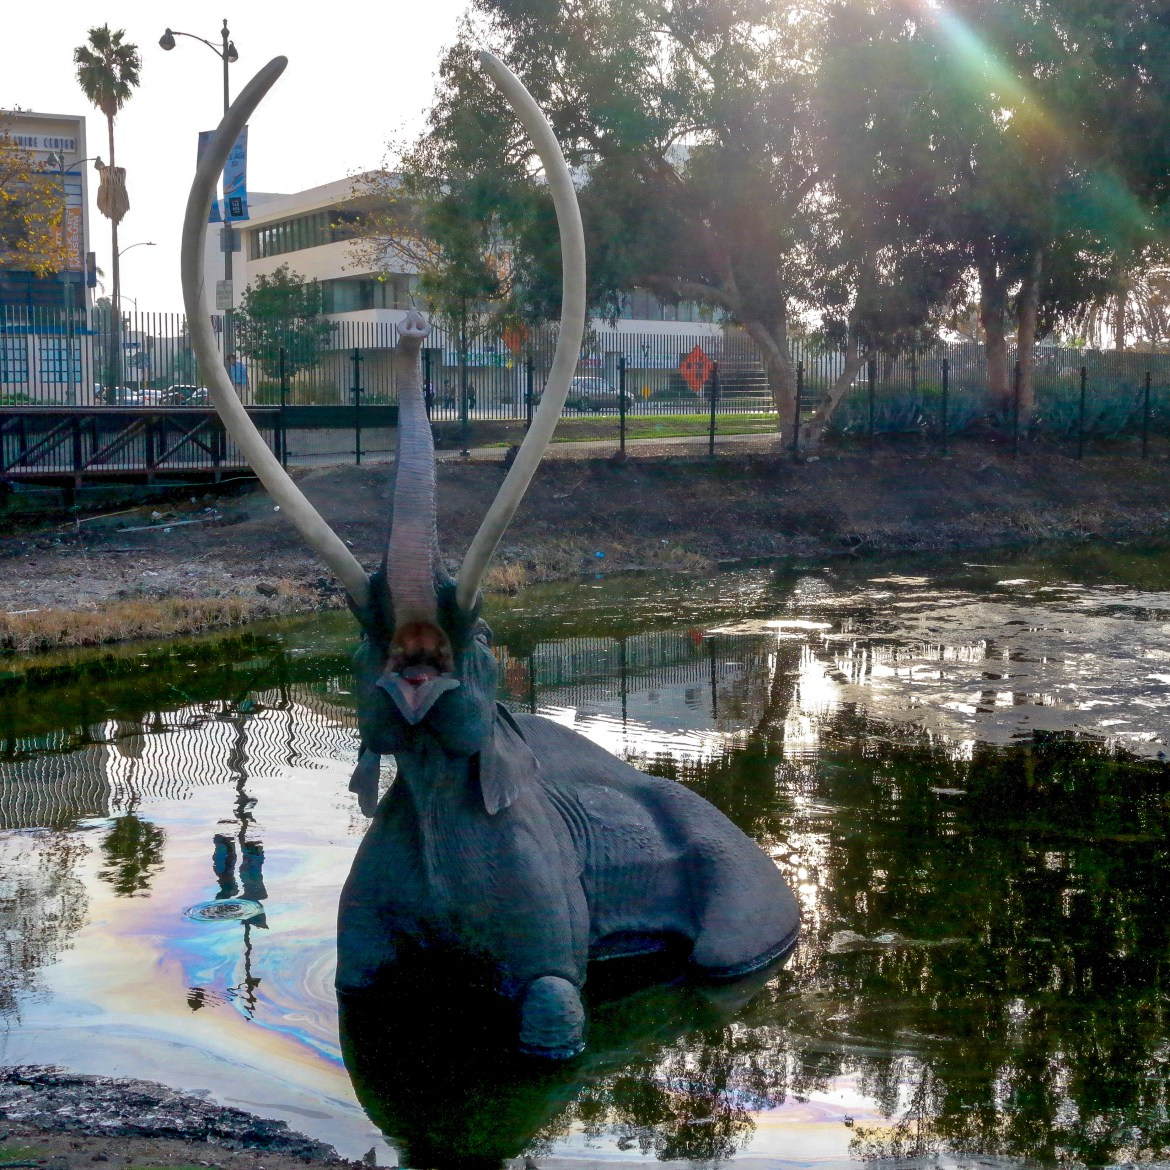 The La Brea Tar Pits Los Angeles California